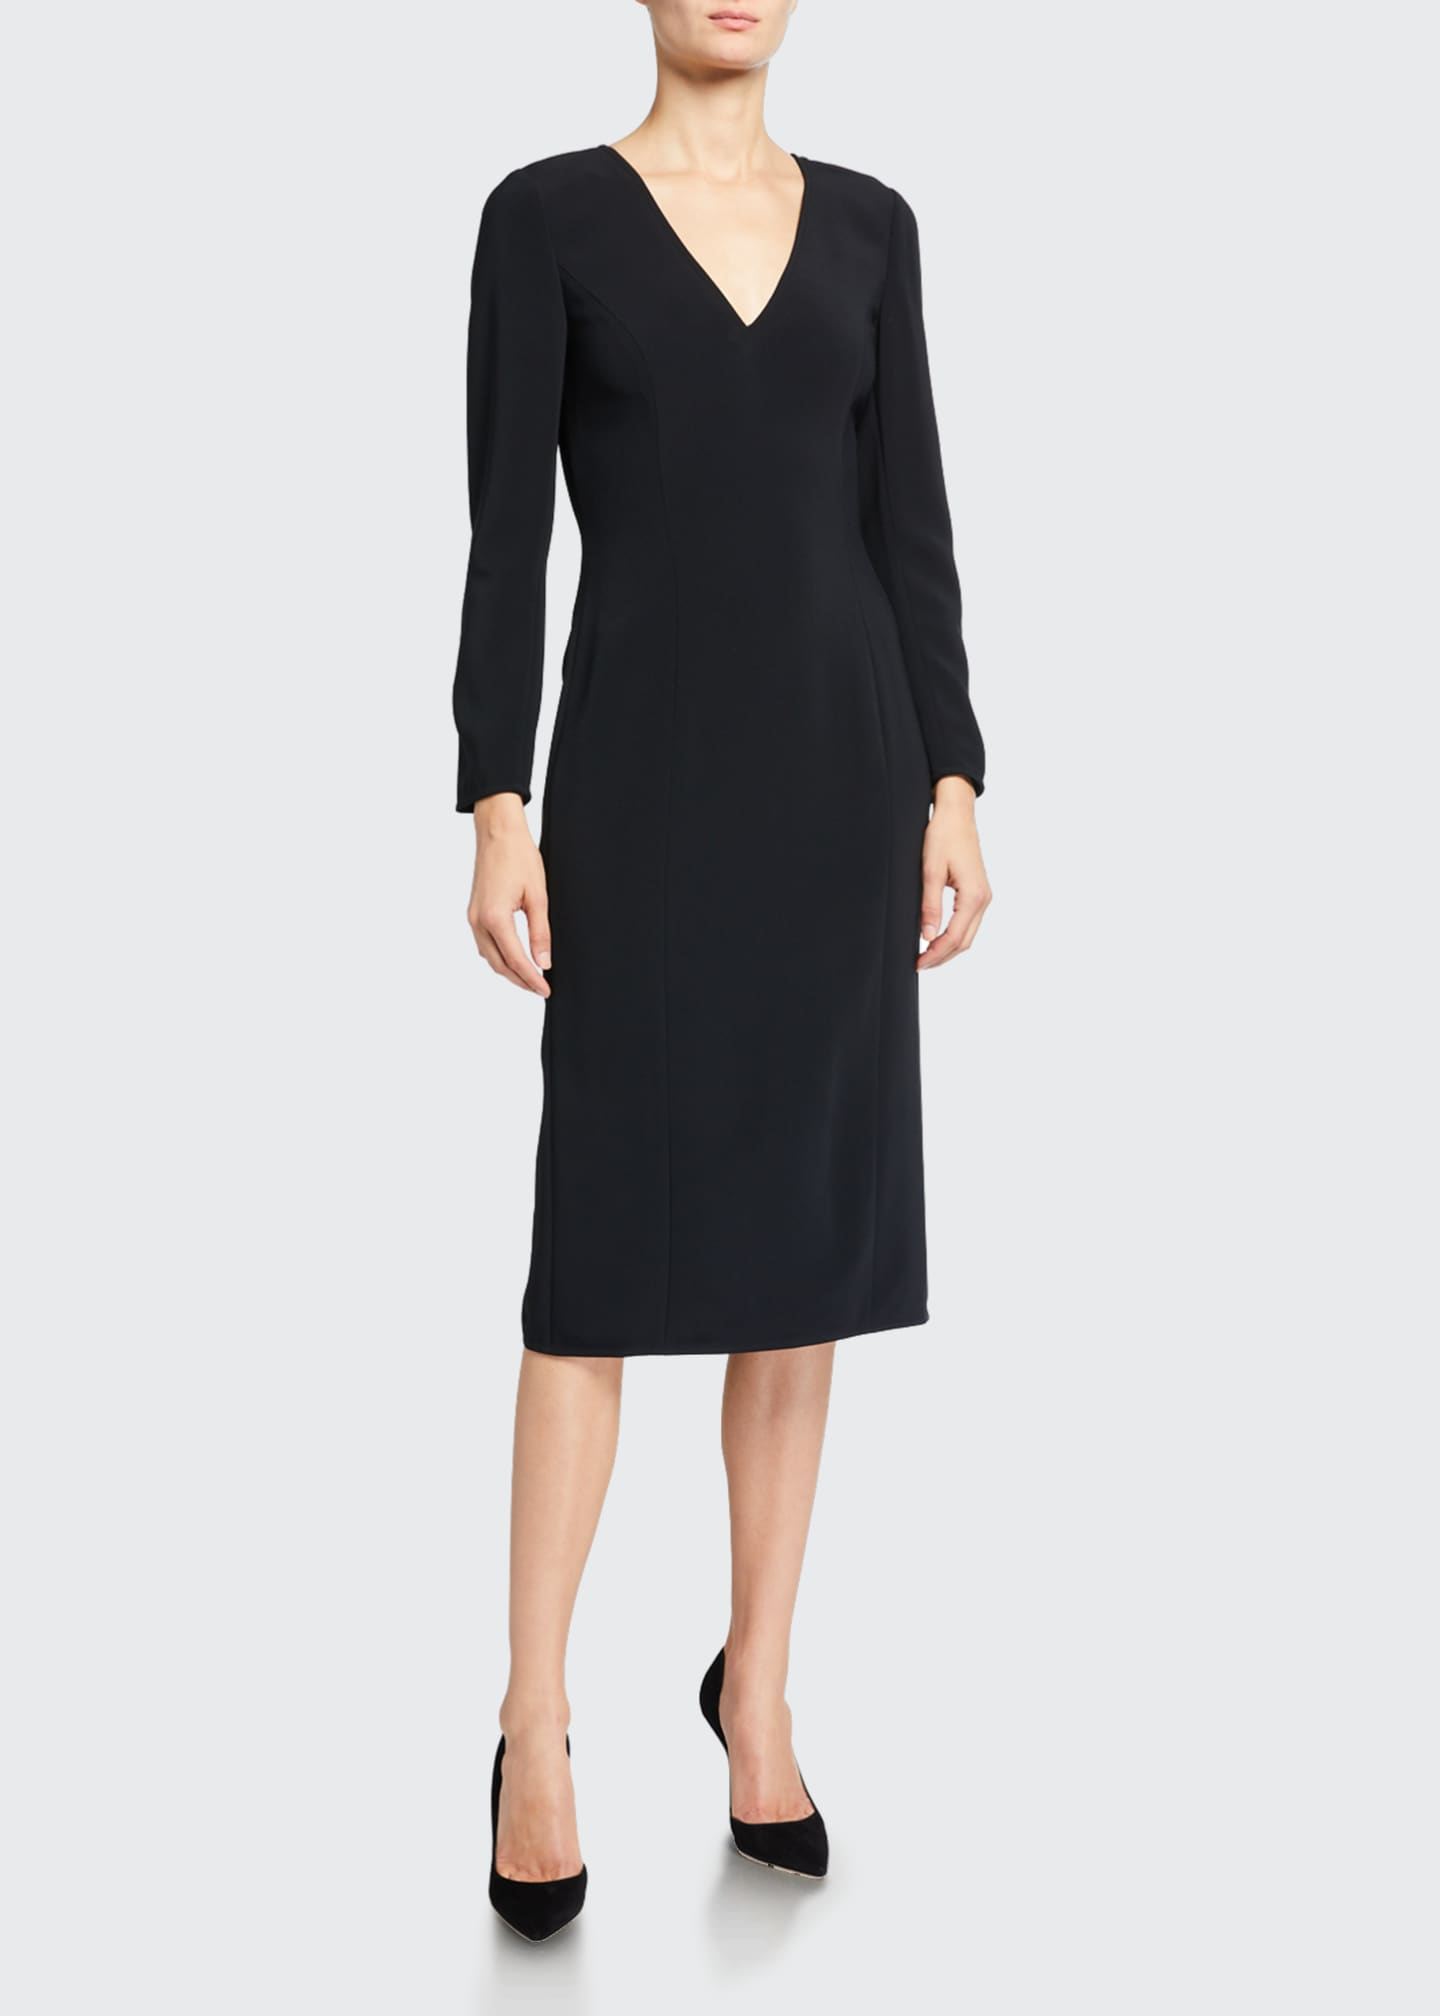 Long-Sleeve V-Neck Sheath Dress